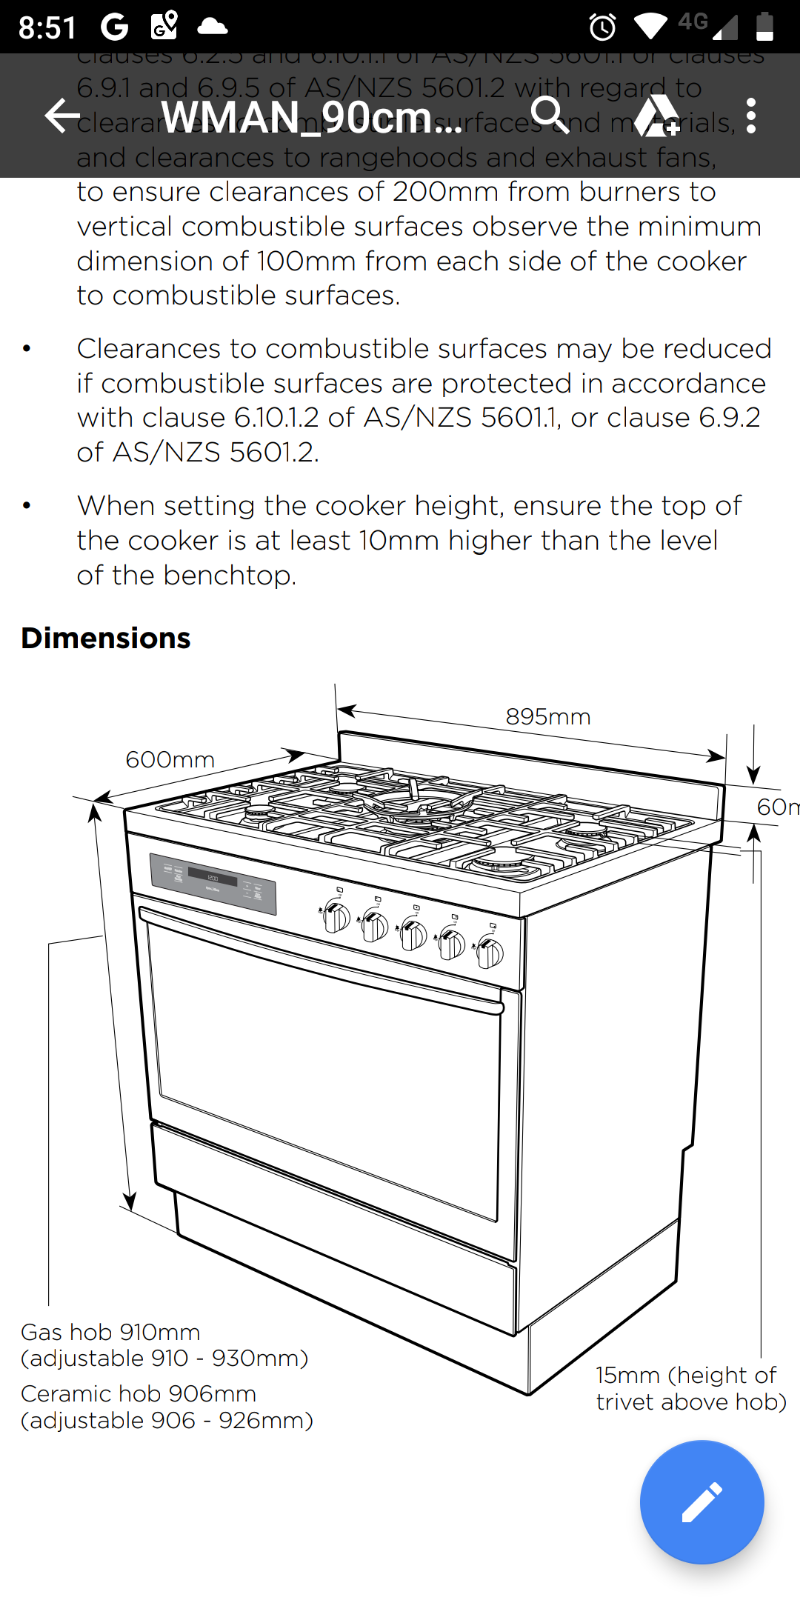 Should the free standing cooker be higher than the bench top